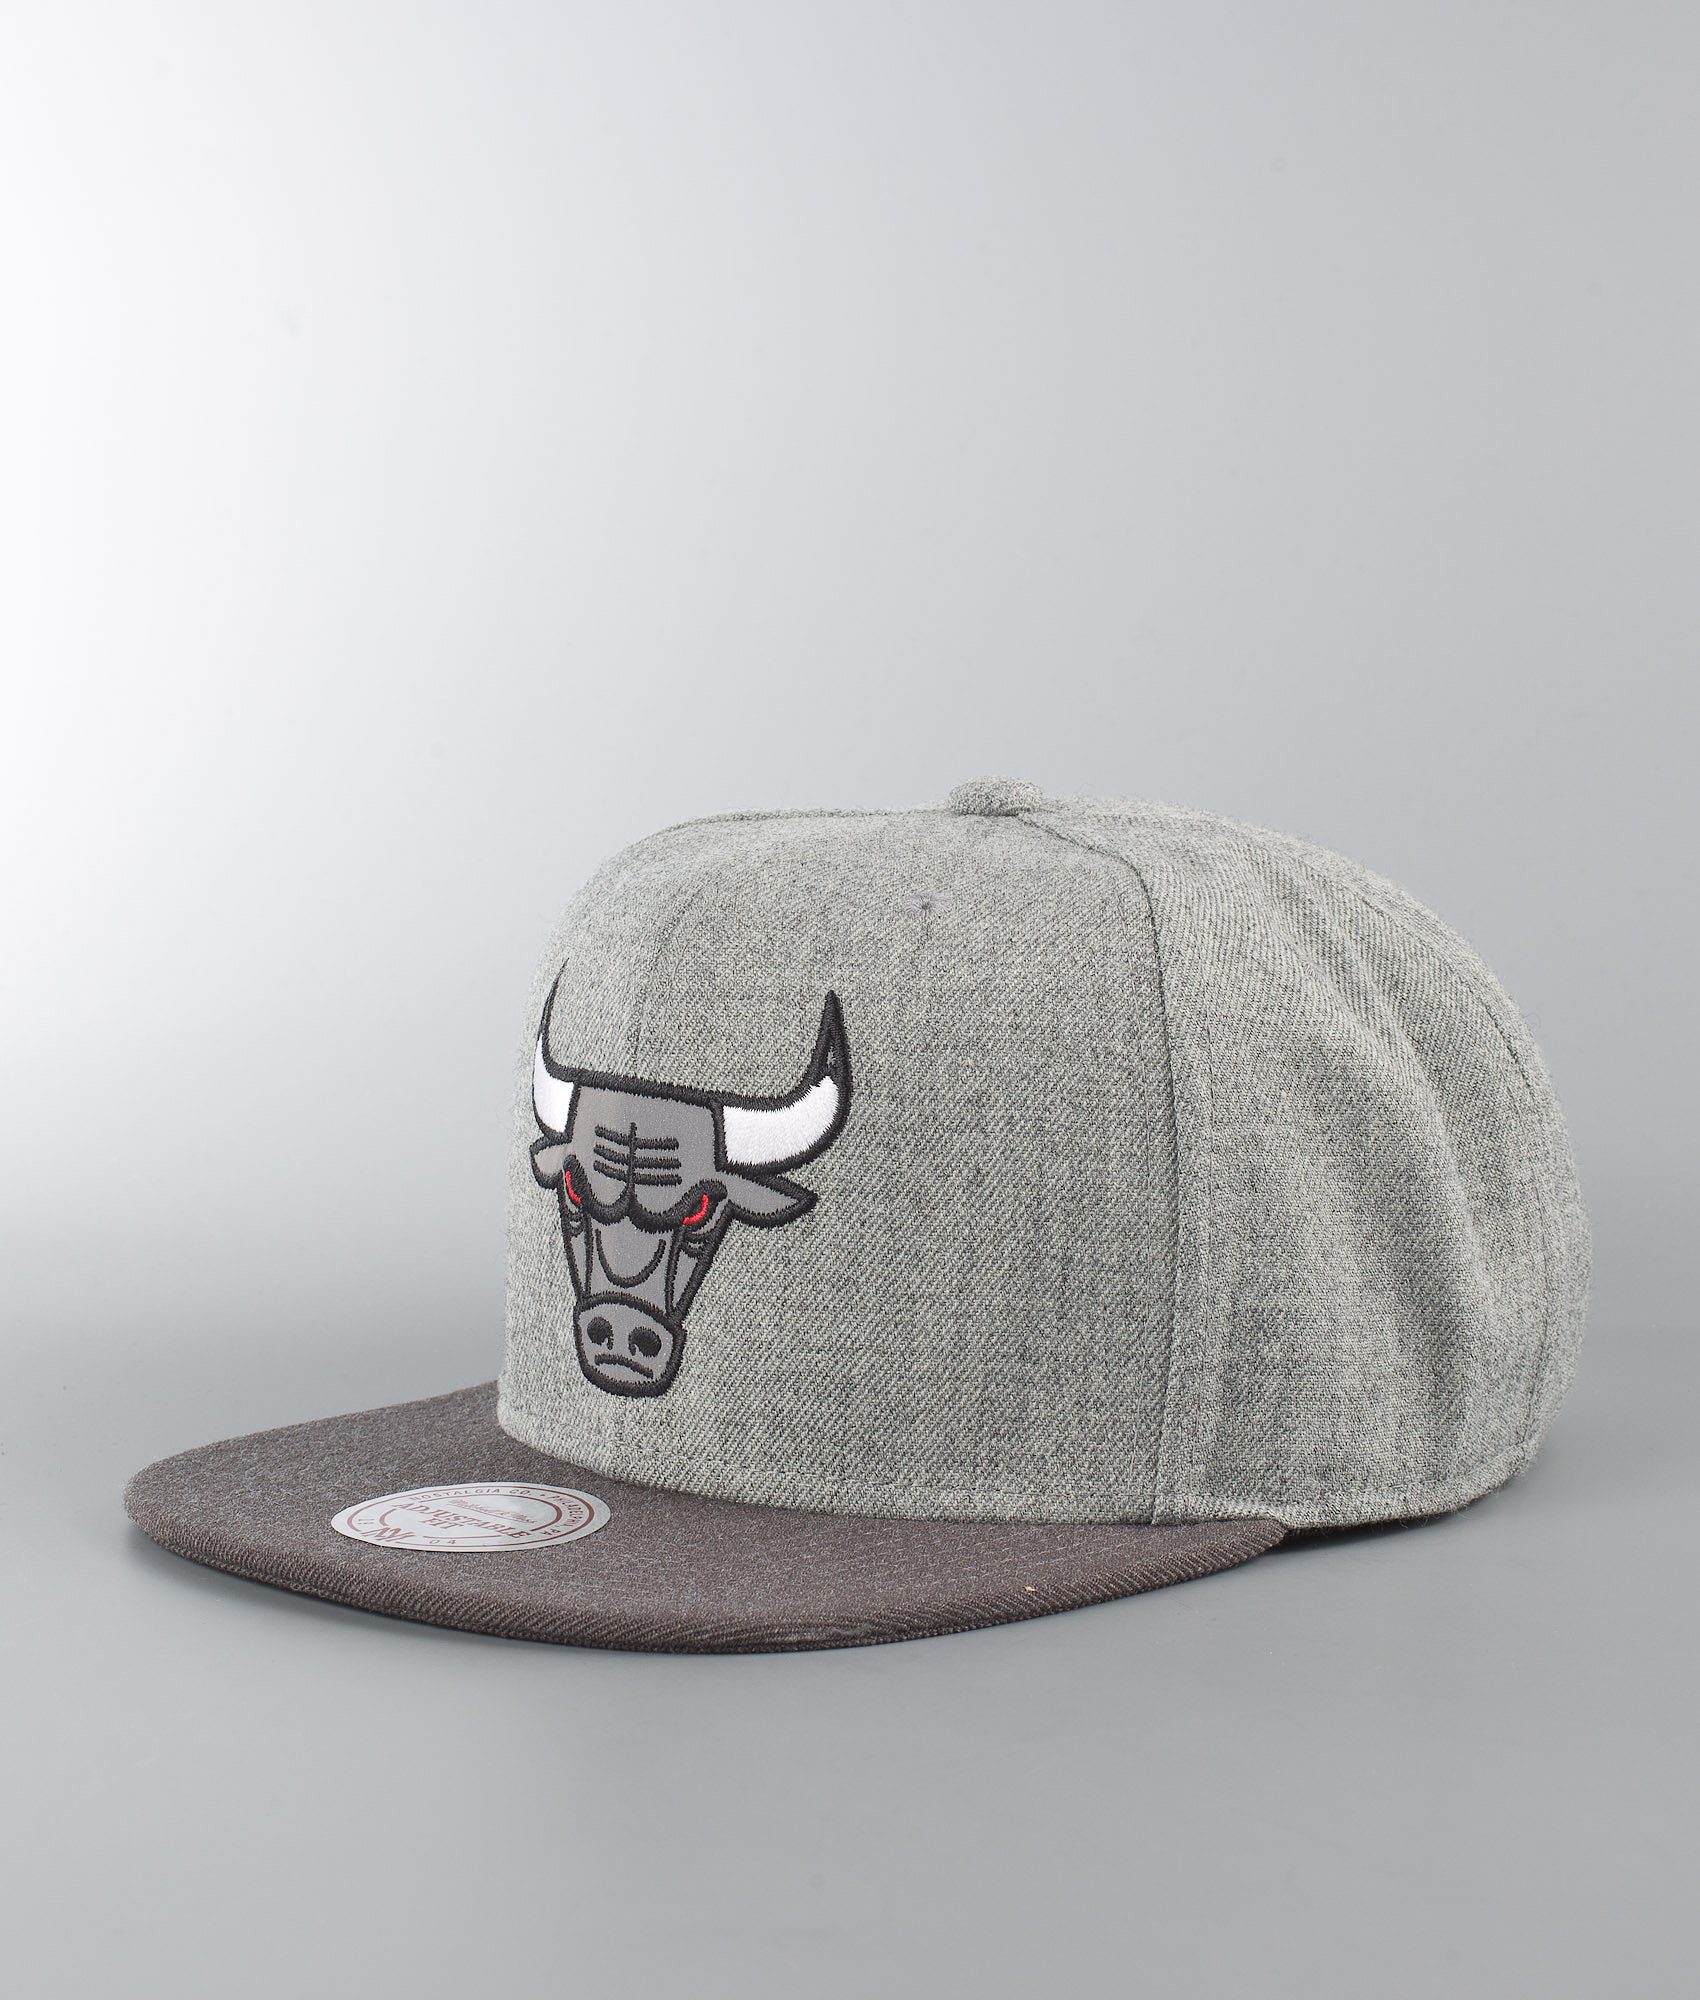 56c34ec7234 Mitchell and Ness Heather Reflective - Chicago Bulls Cap Grey ...